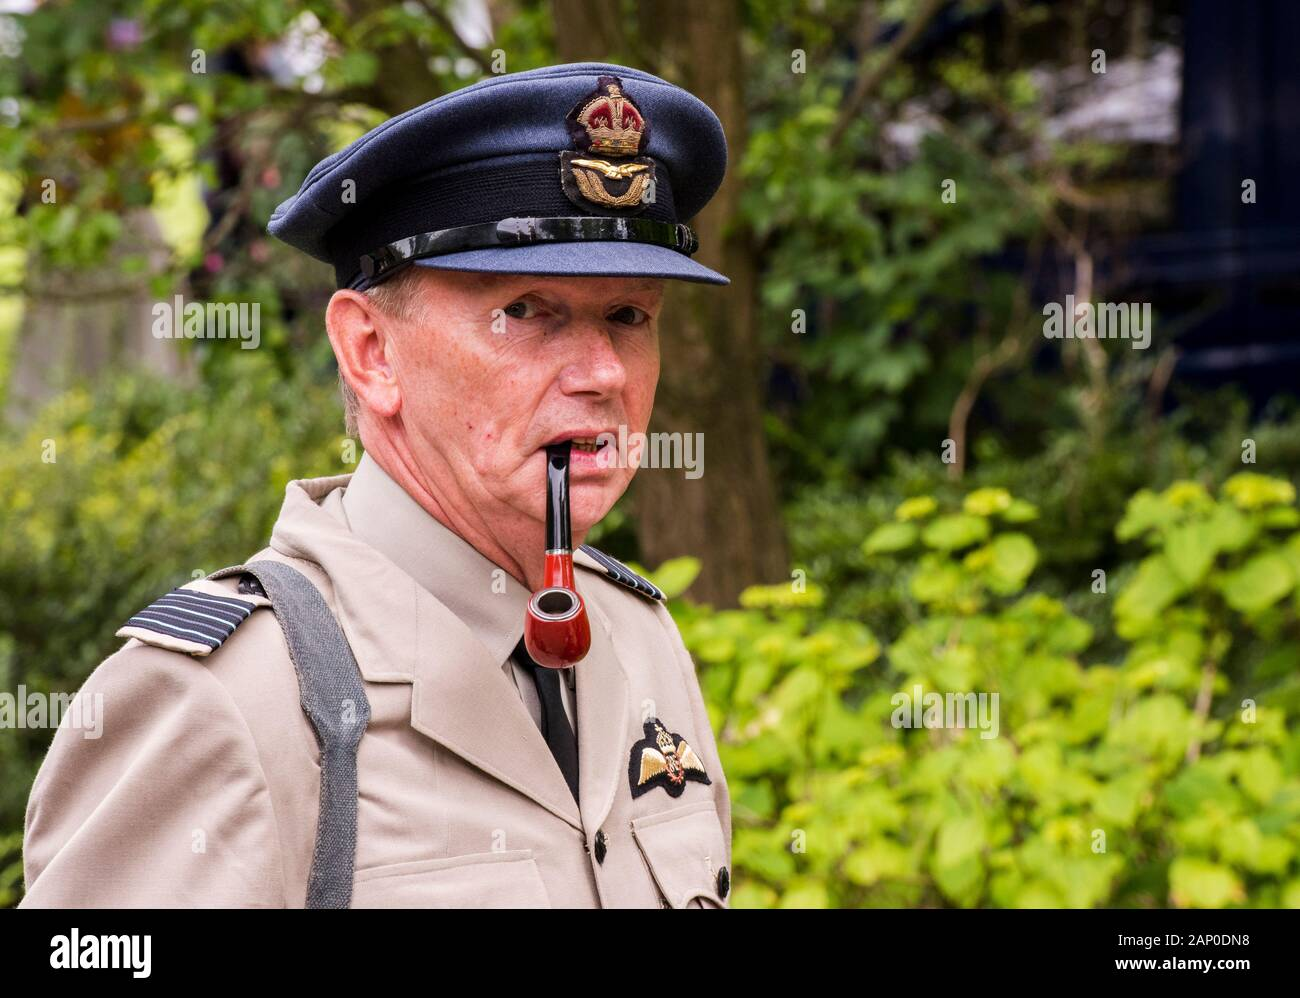 Man in military uniform smoking pipe in Valley Gardens on 1940s Day in Harrogate in England. Stock Photo